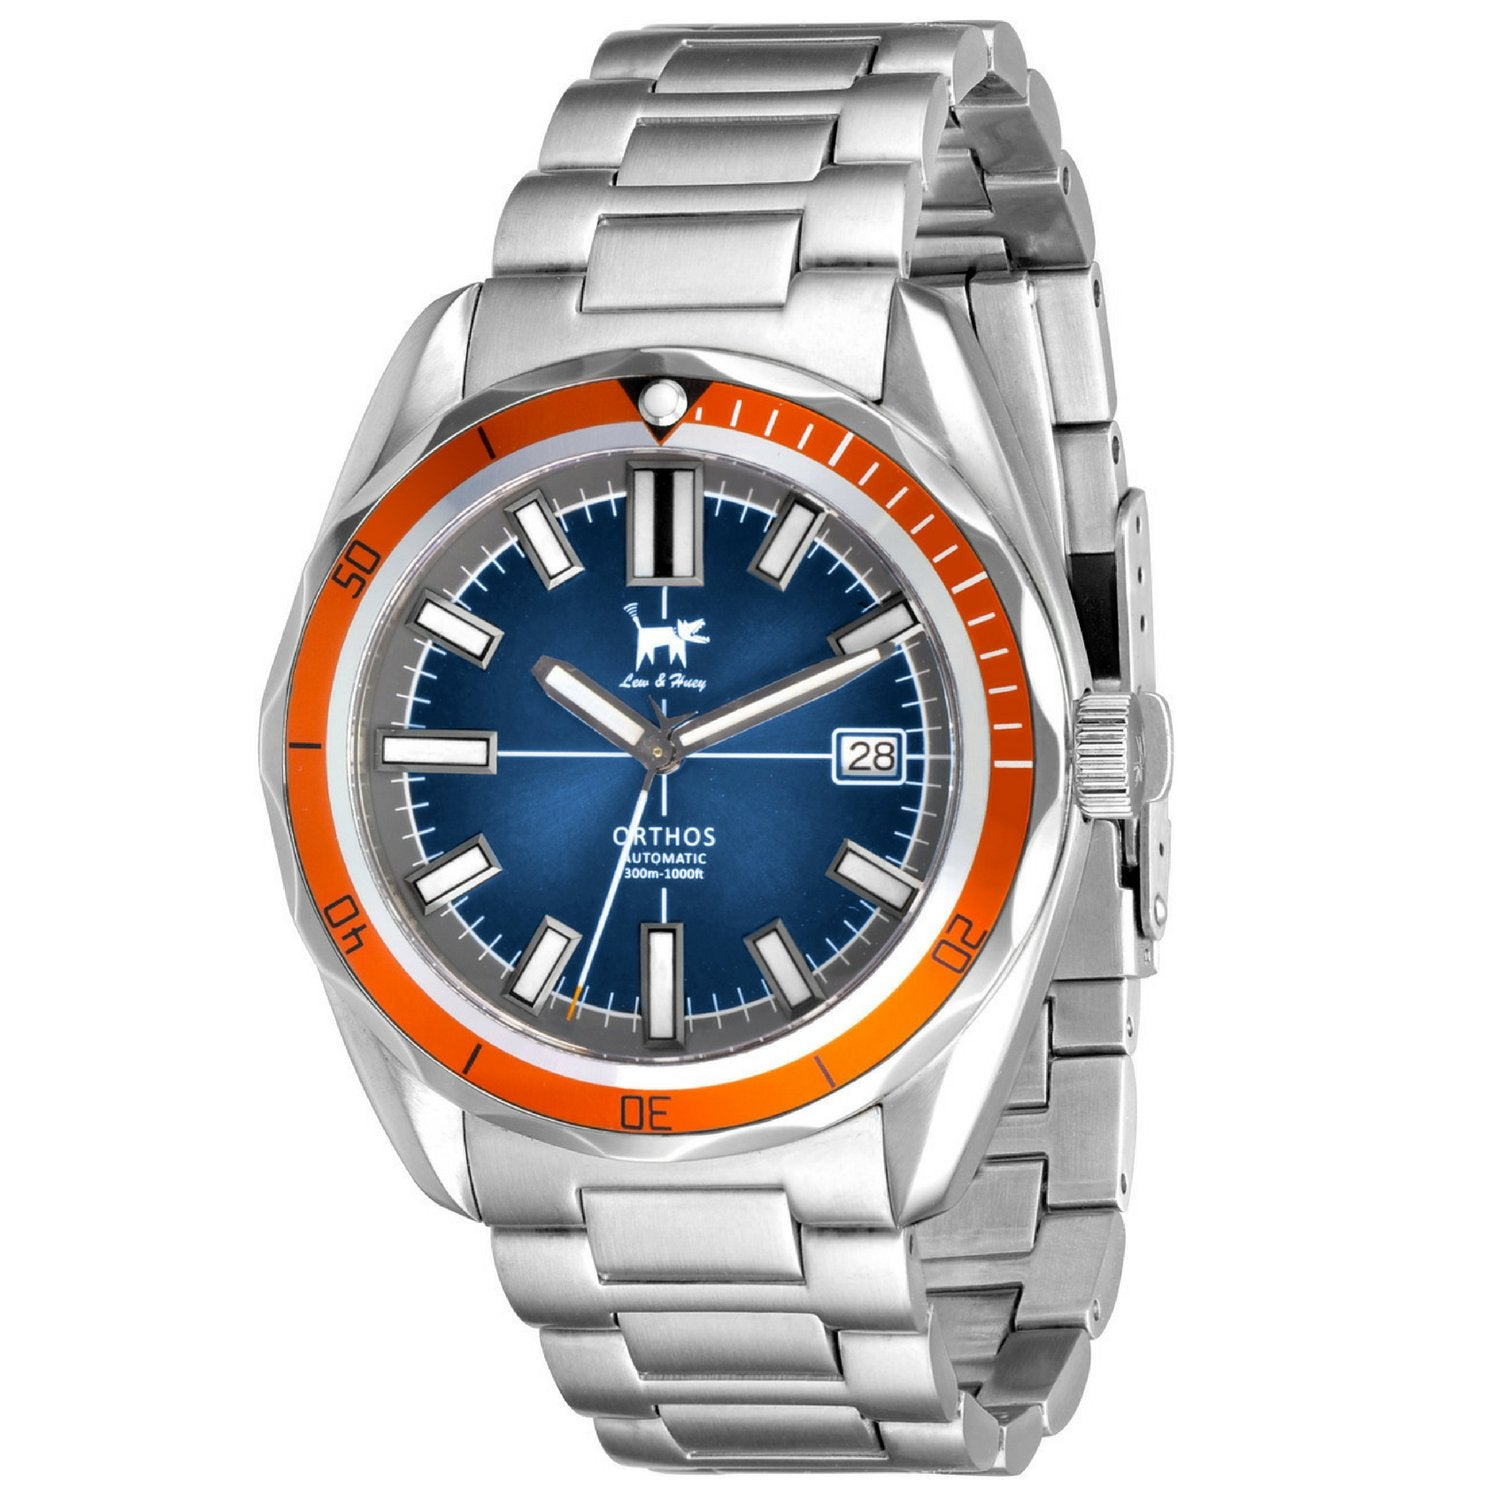 Lew and Huey Orthos Automatic Watch (Blue & Orange)